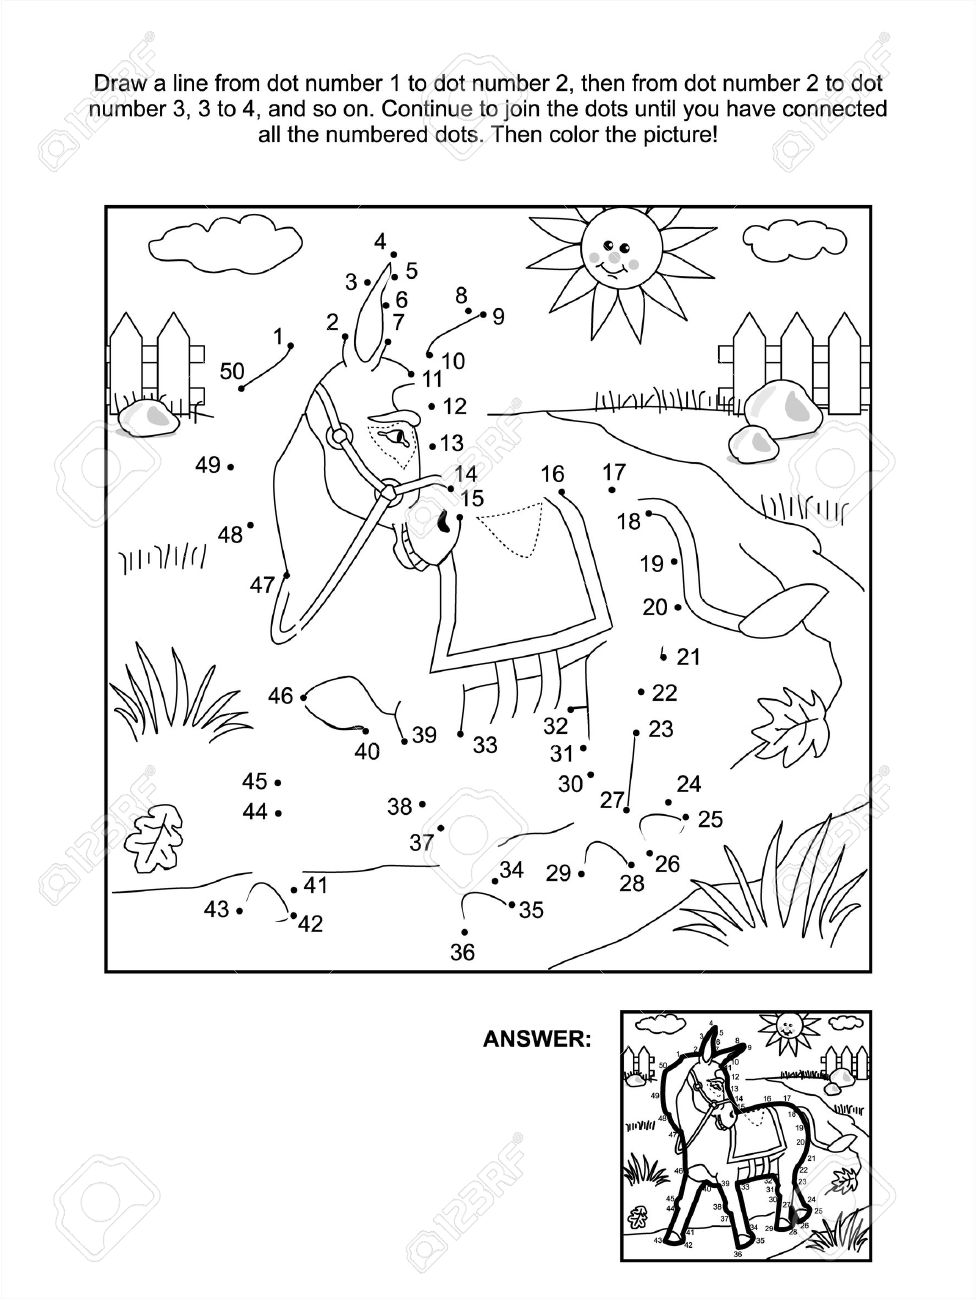 connect the dots picture puzzle and coloring page donkey answer